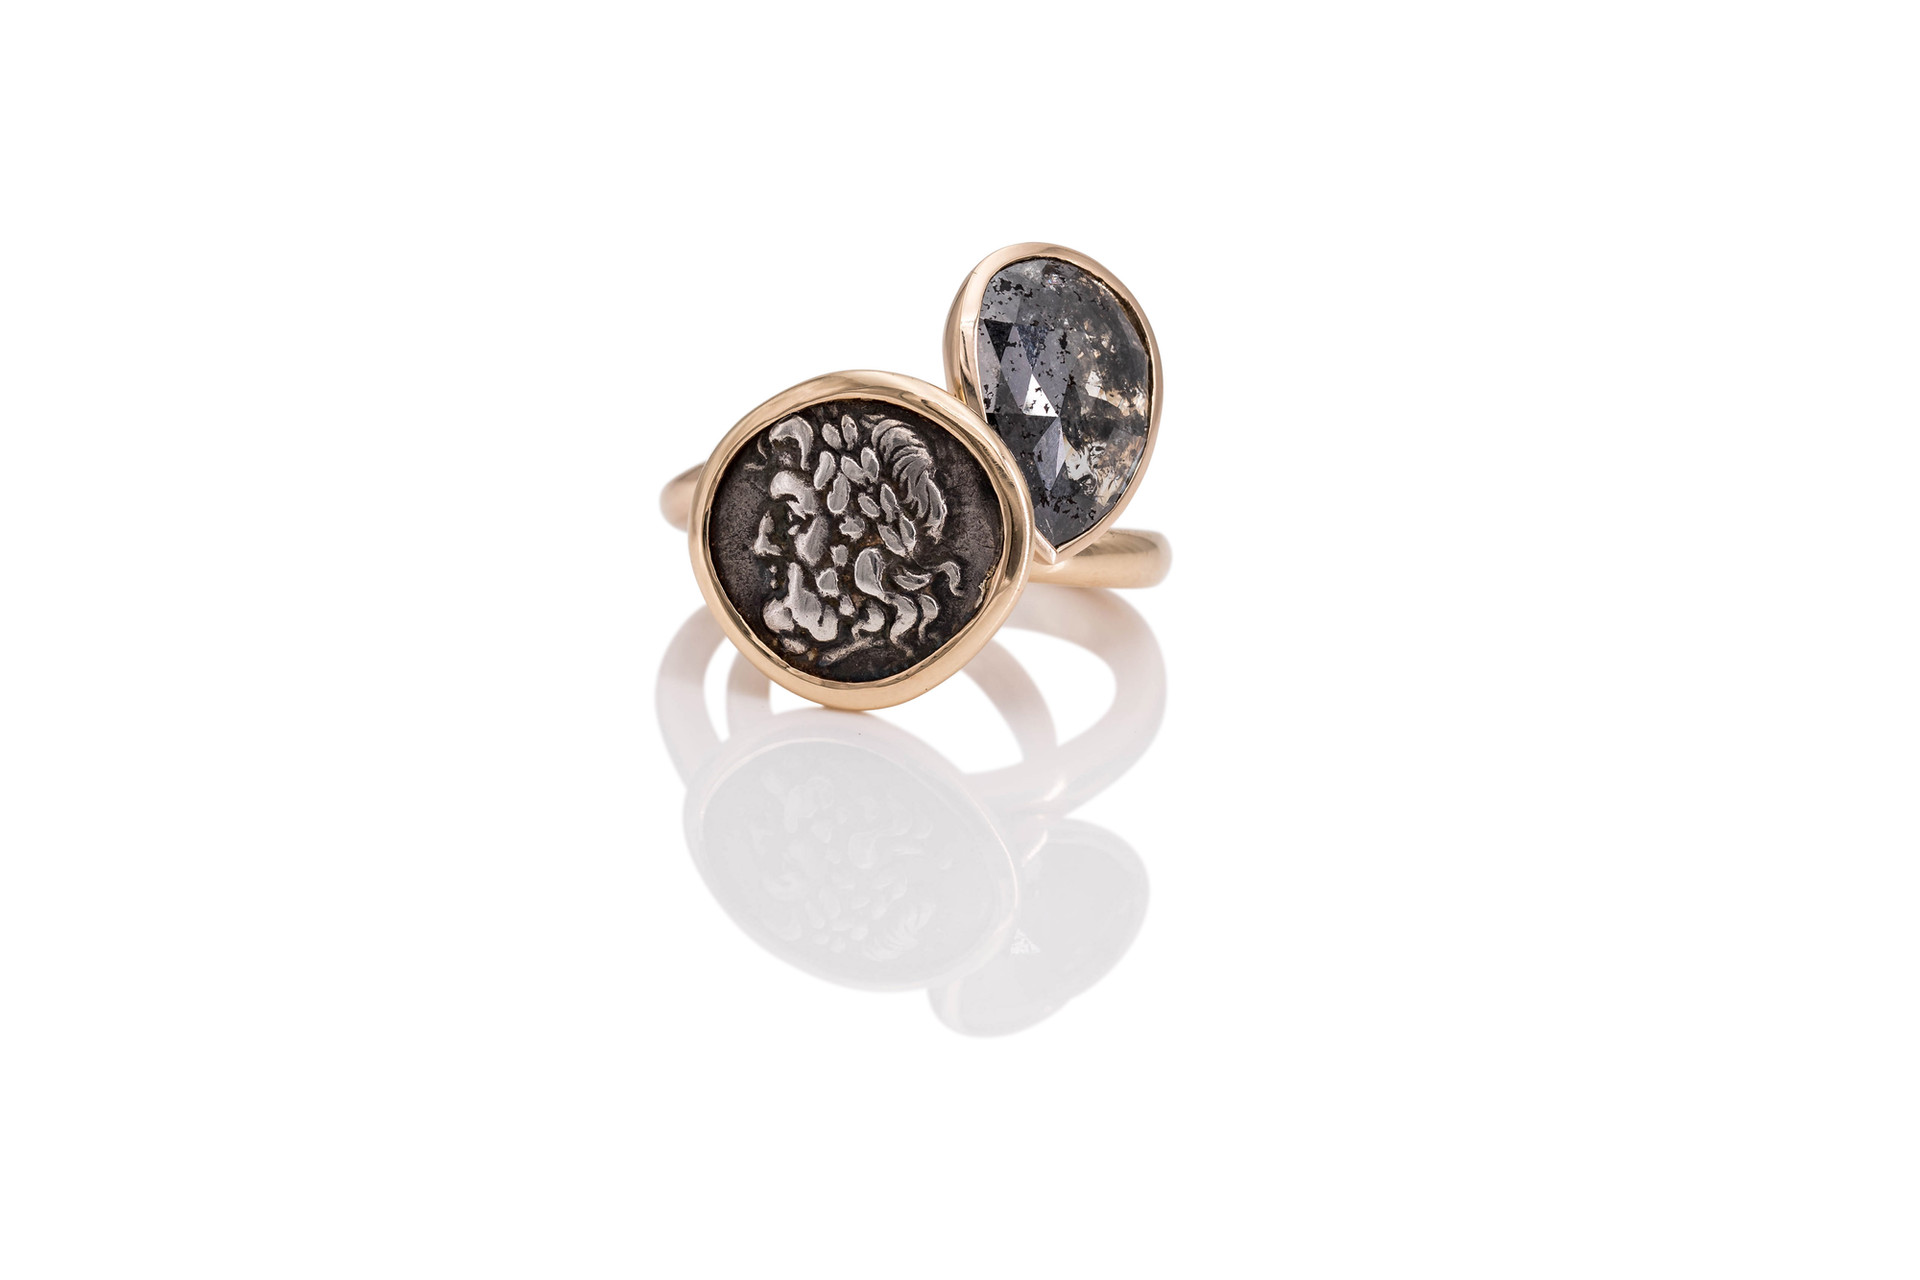 18k GOLD RING ZEUS ancient greek coin 345 b.c.  Zeus is the supreme Olympian god and more powerful than any other Greek gods together.   18k GOLD RING DIAMOND rosecut diamond 3,6 ct grey